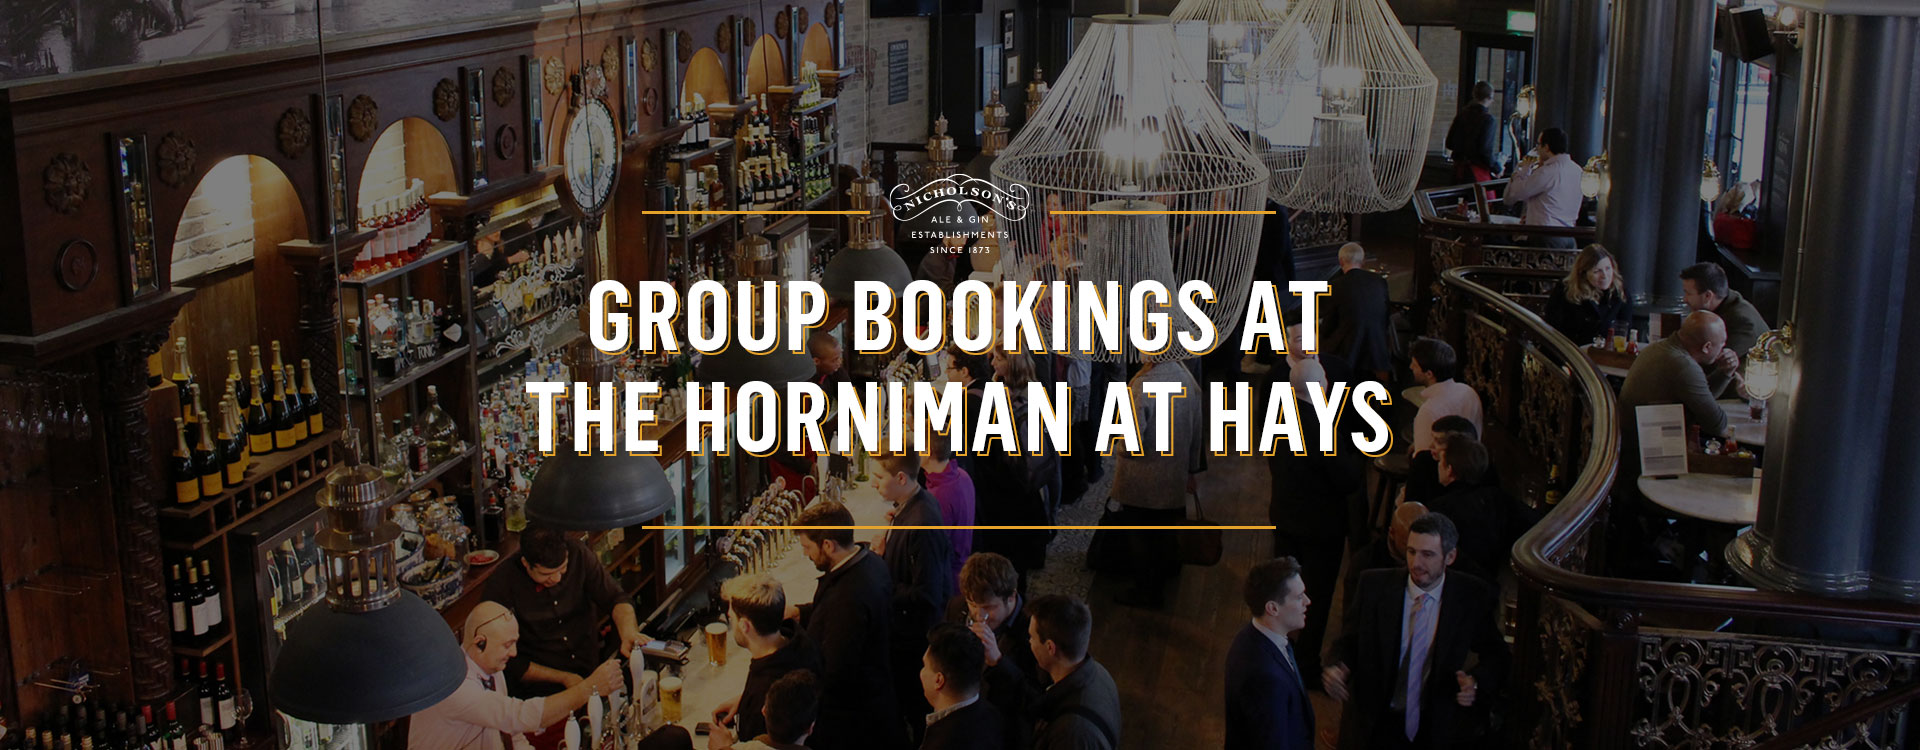 Group Bookings at The Horniman at Hays